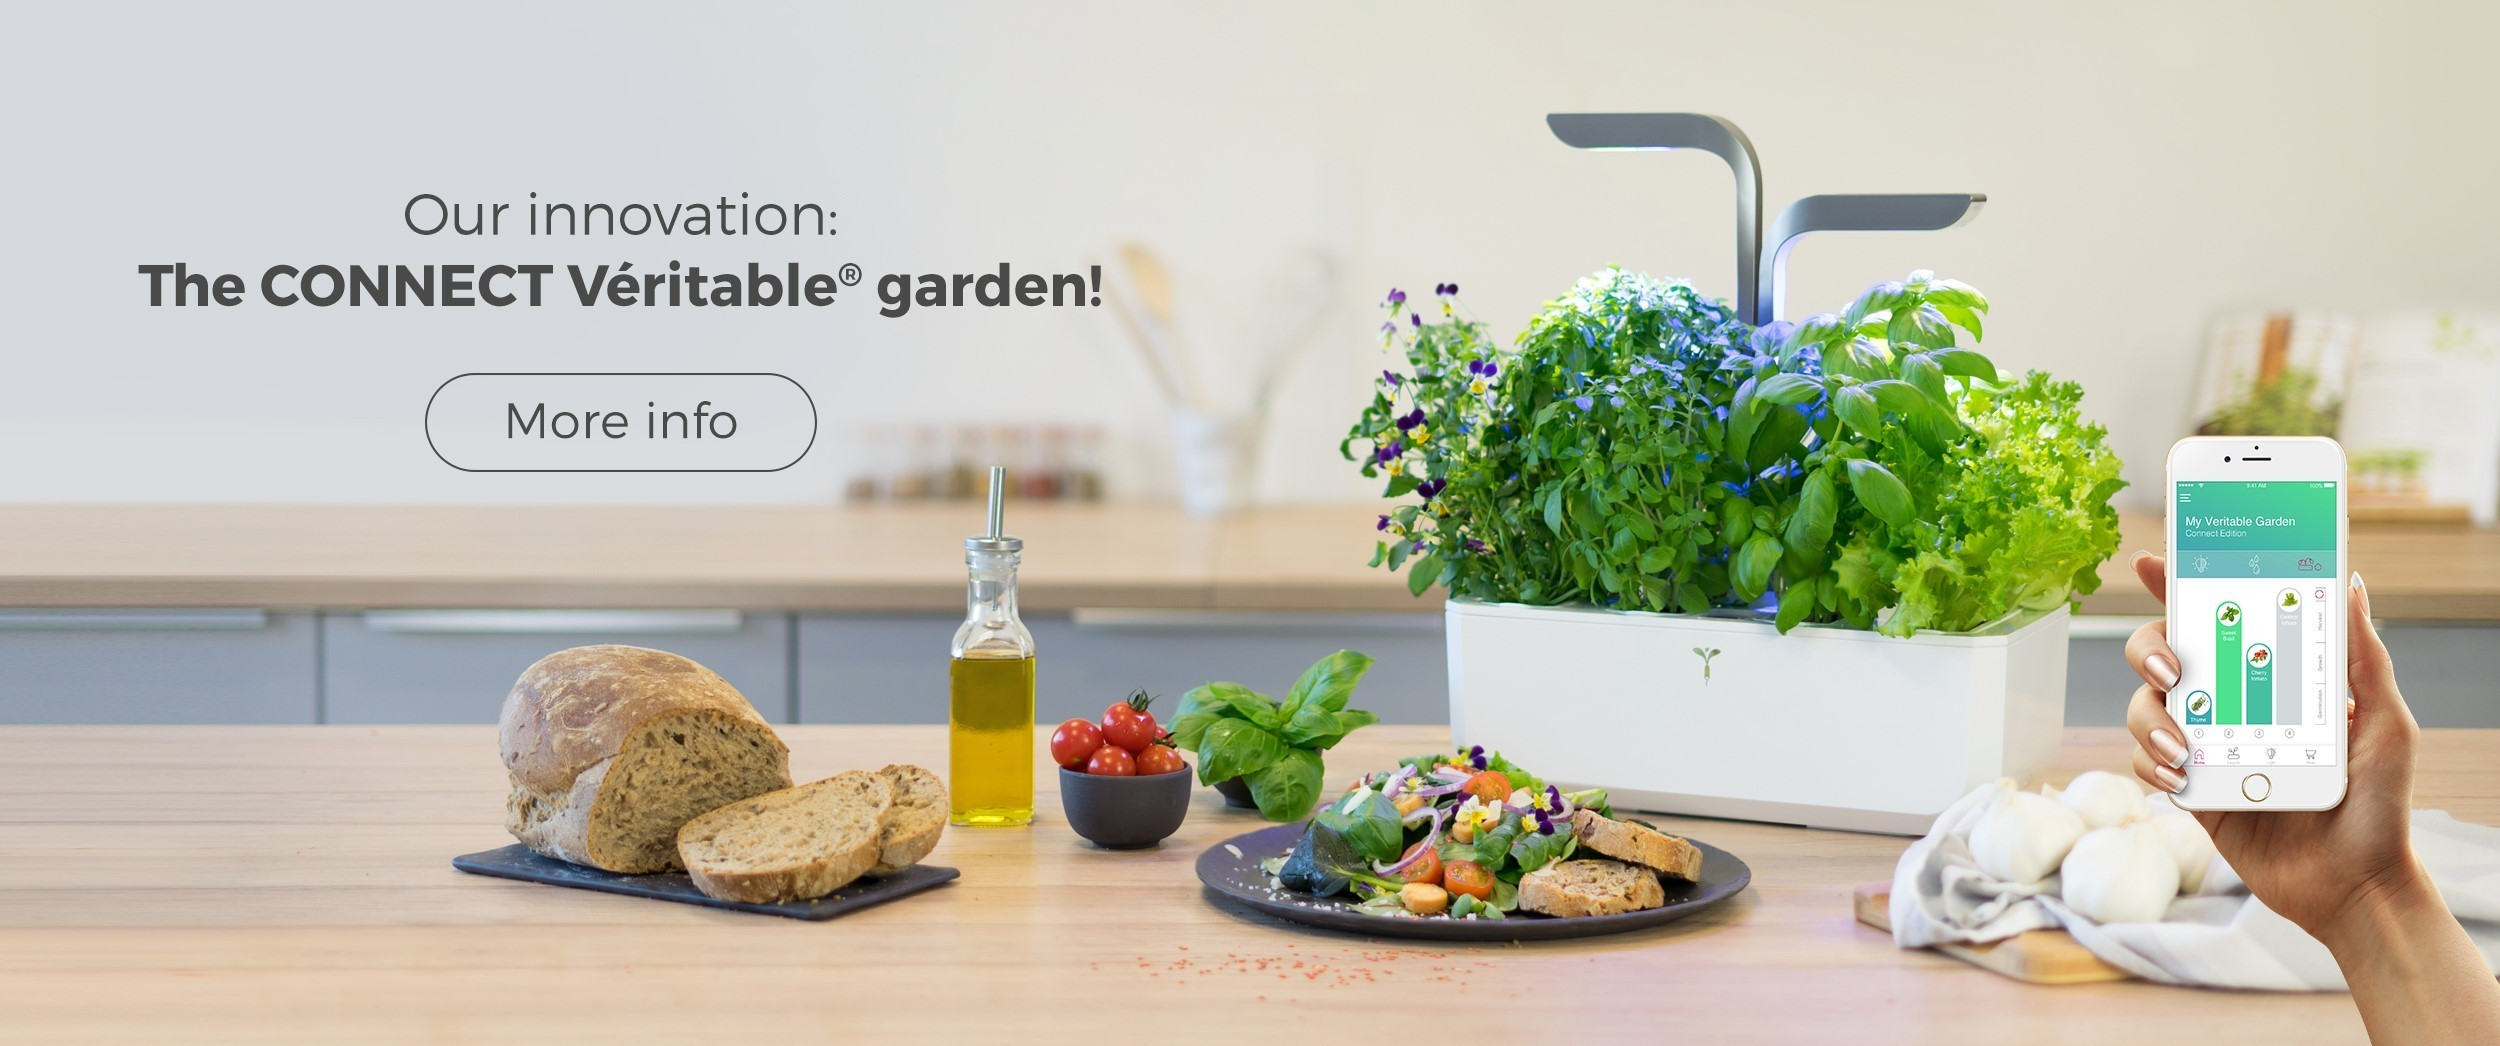 Our innovation: CONNECT VERITABLE® GARDEN